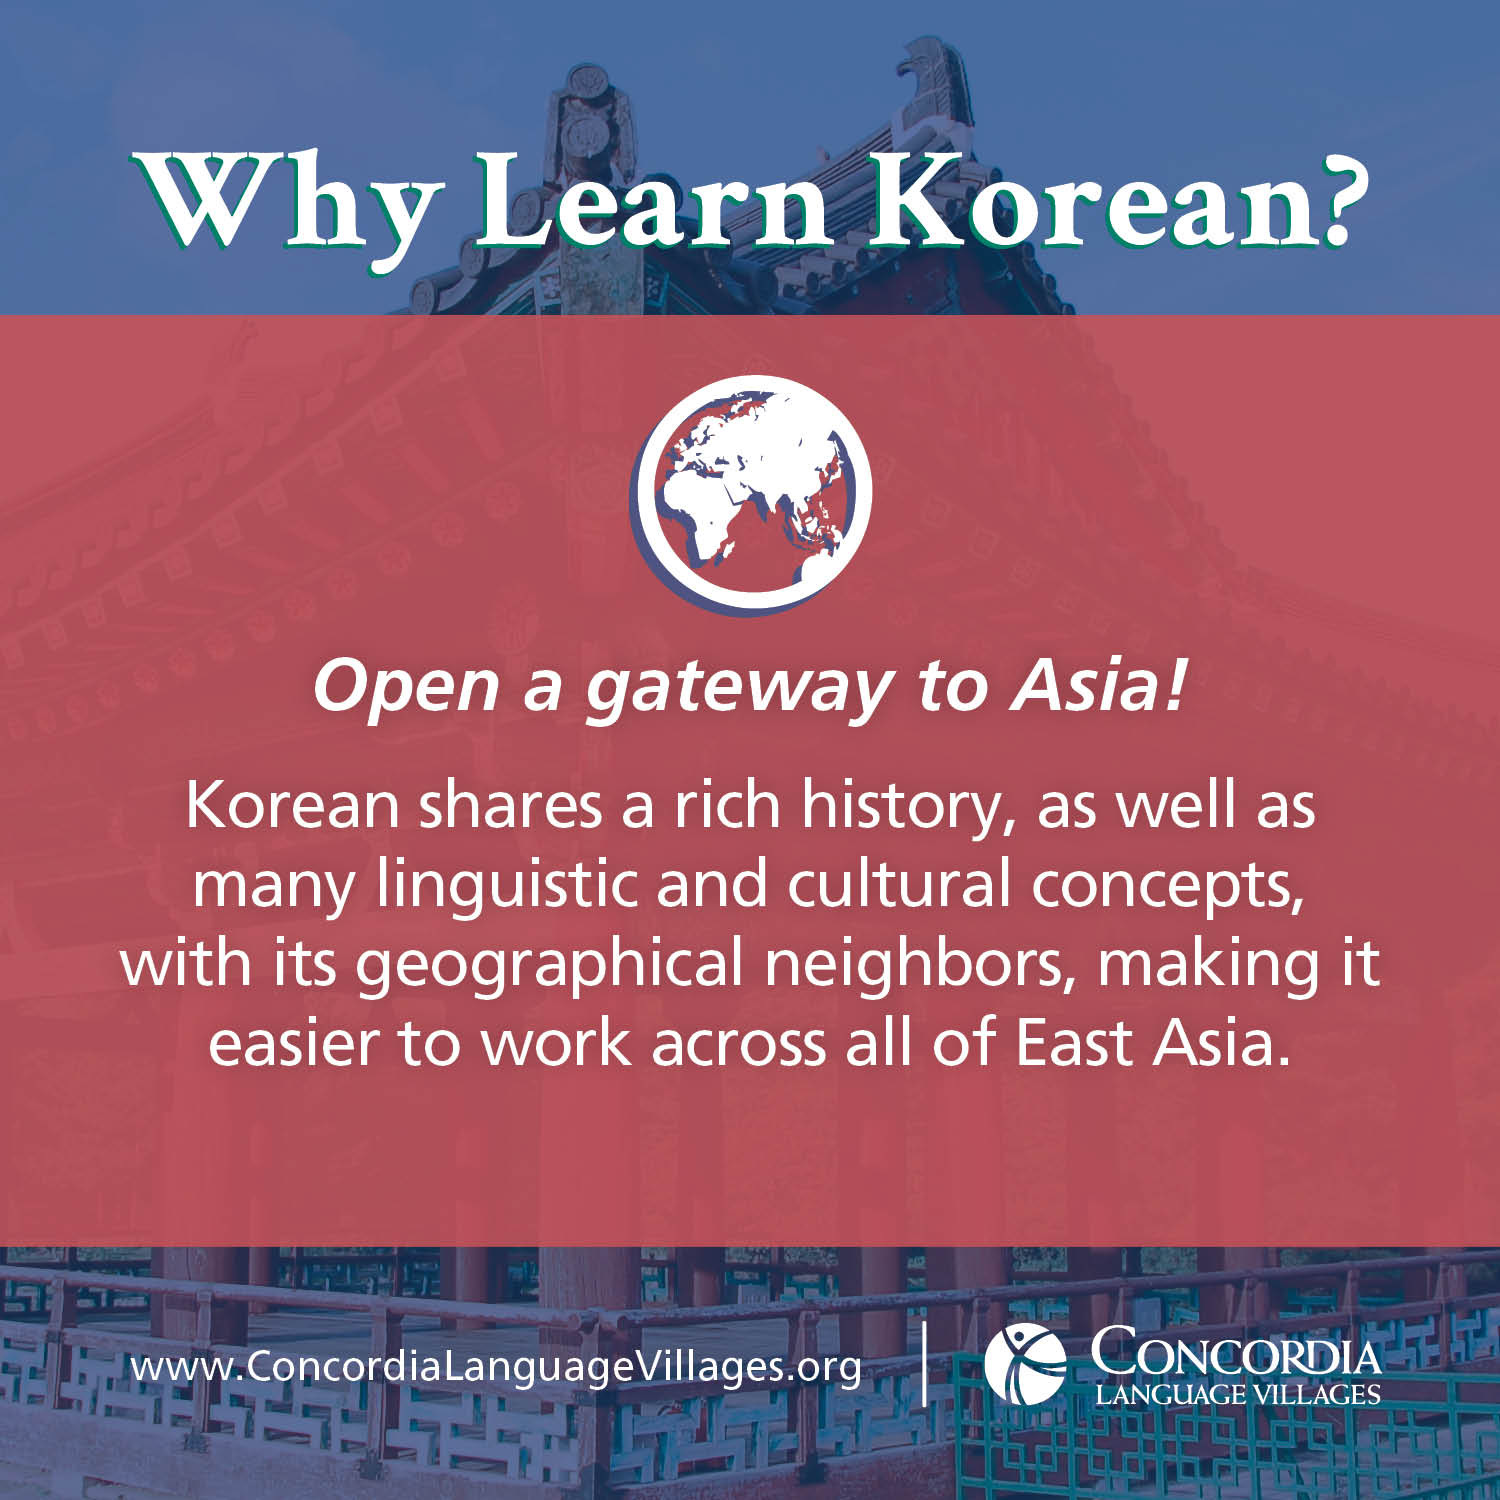 Why Learn Korean? Open a gateway to Asia! Korean shares a rich history, as well as many linguistic and cultural concepts, with its geographical neighbors, making it easier to work across all of East Asia.